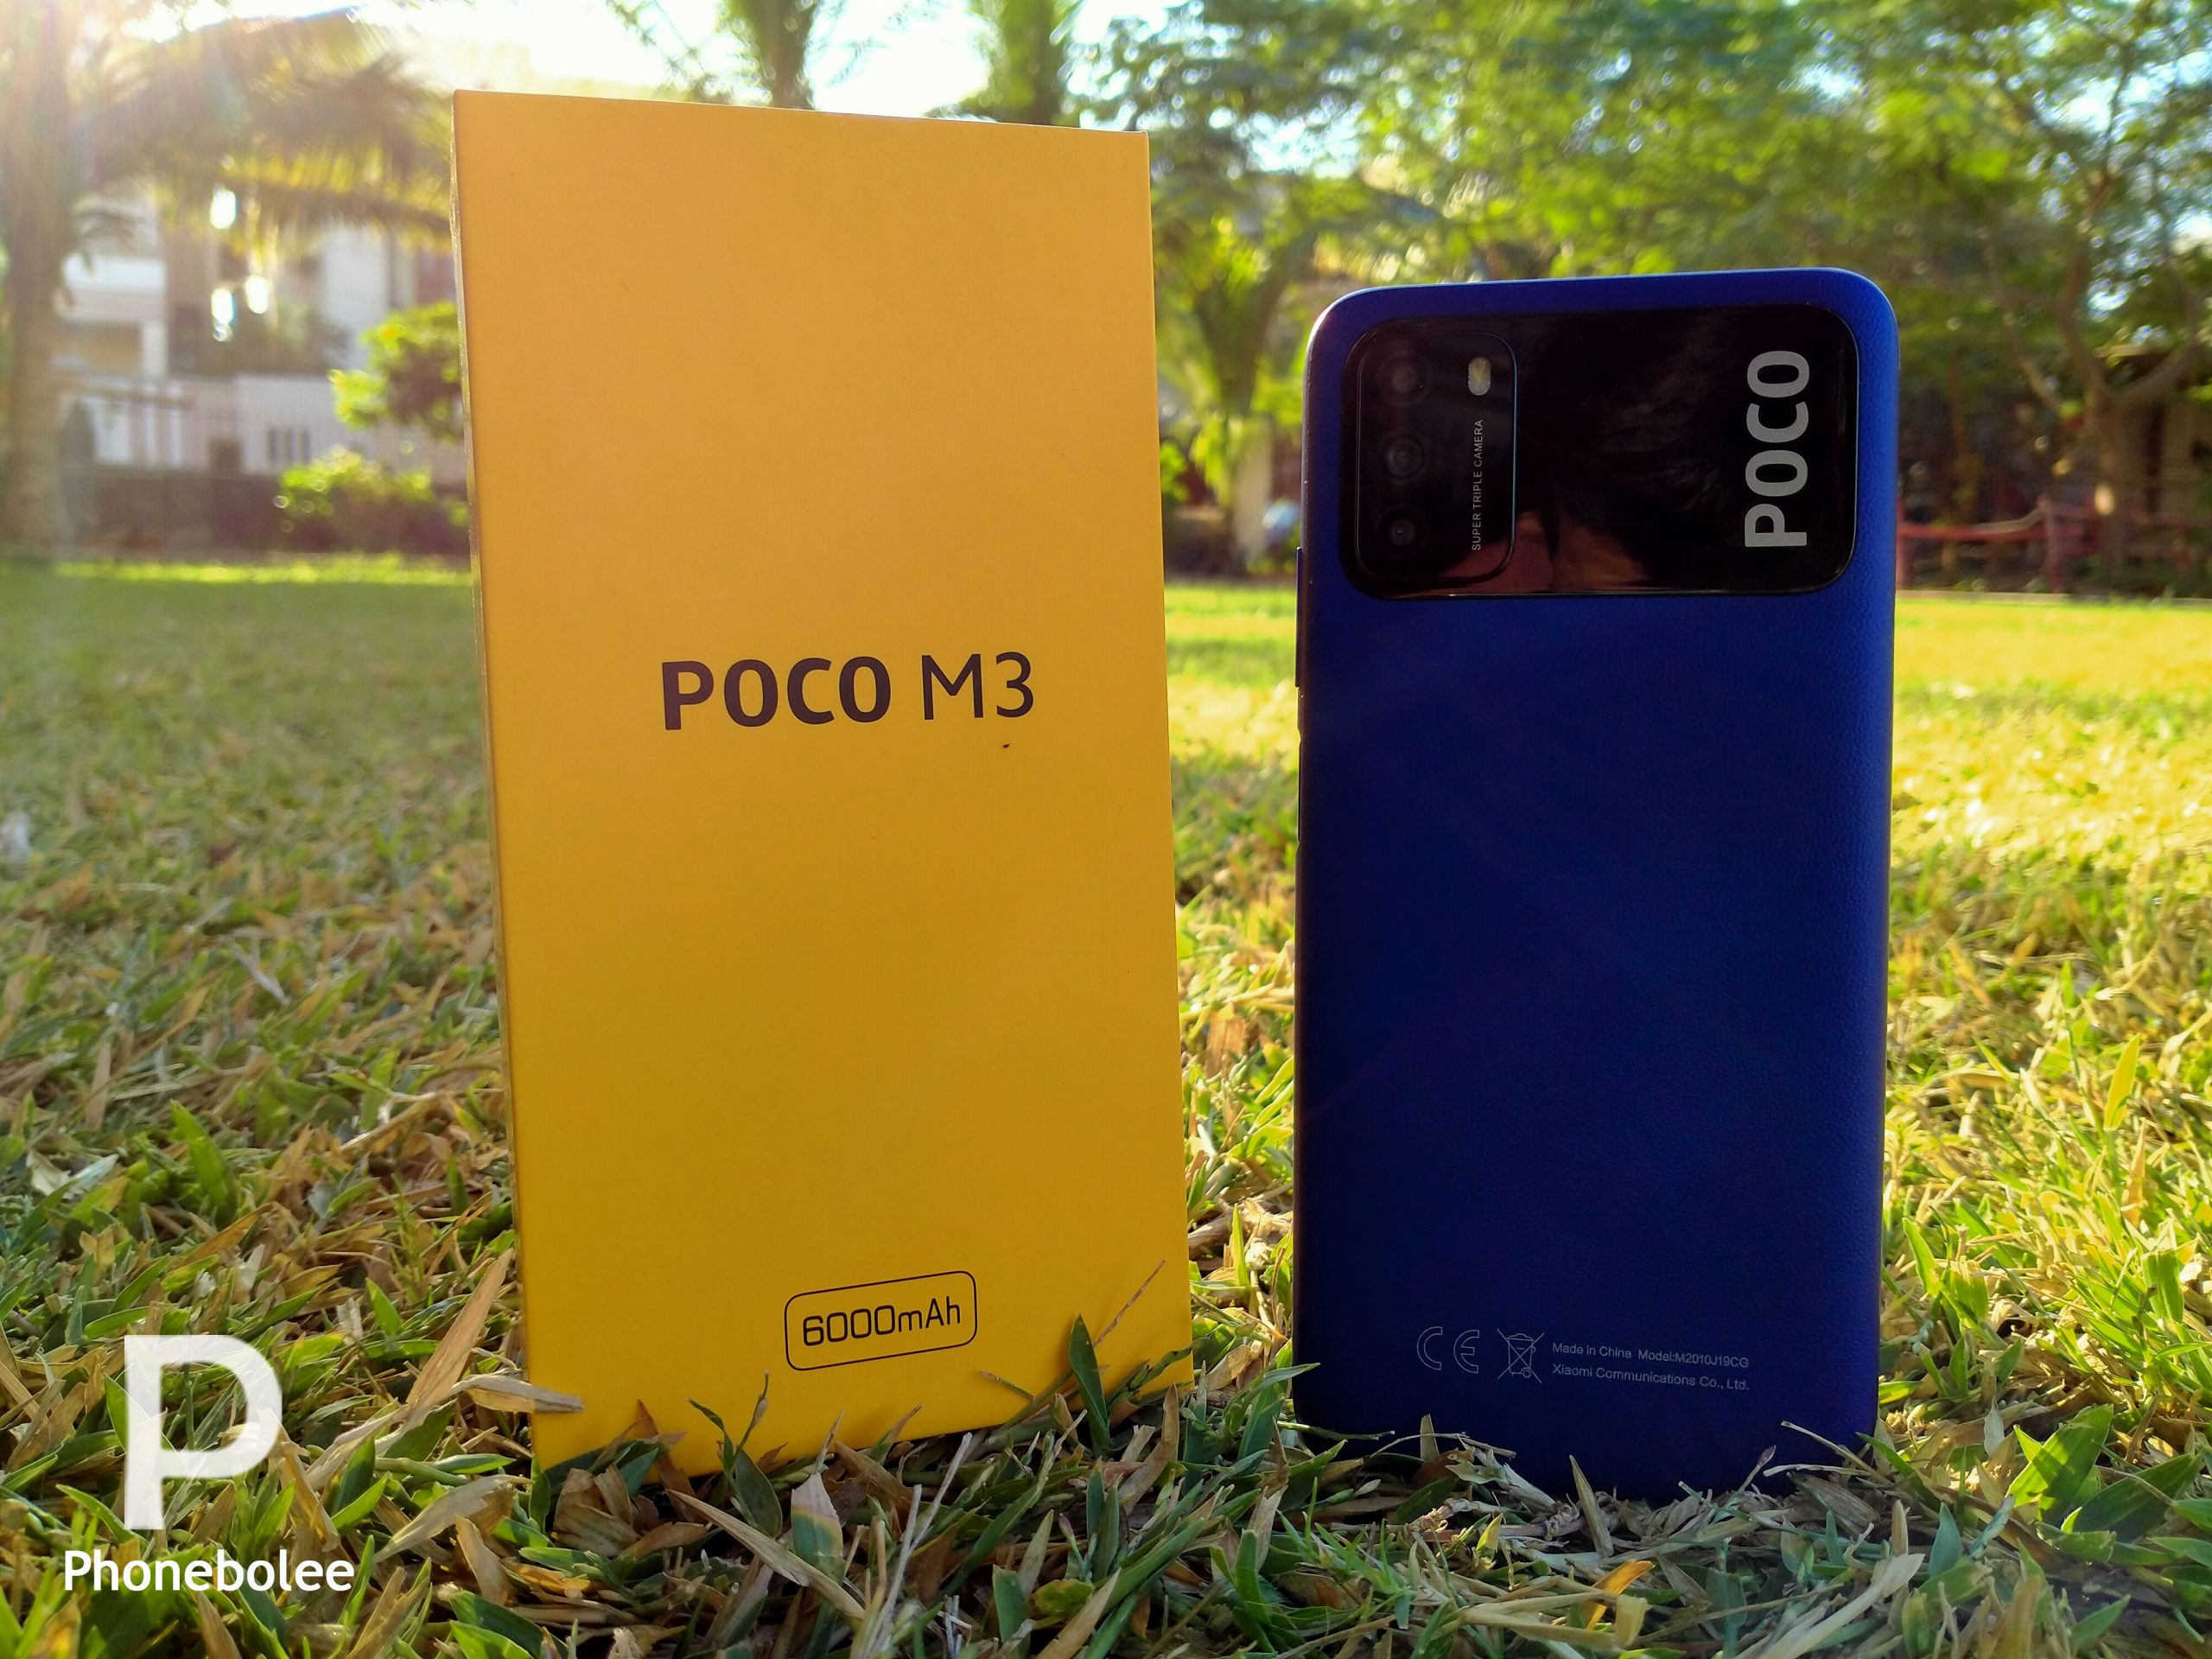 Poco M3 unboxing and first look impressions